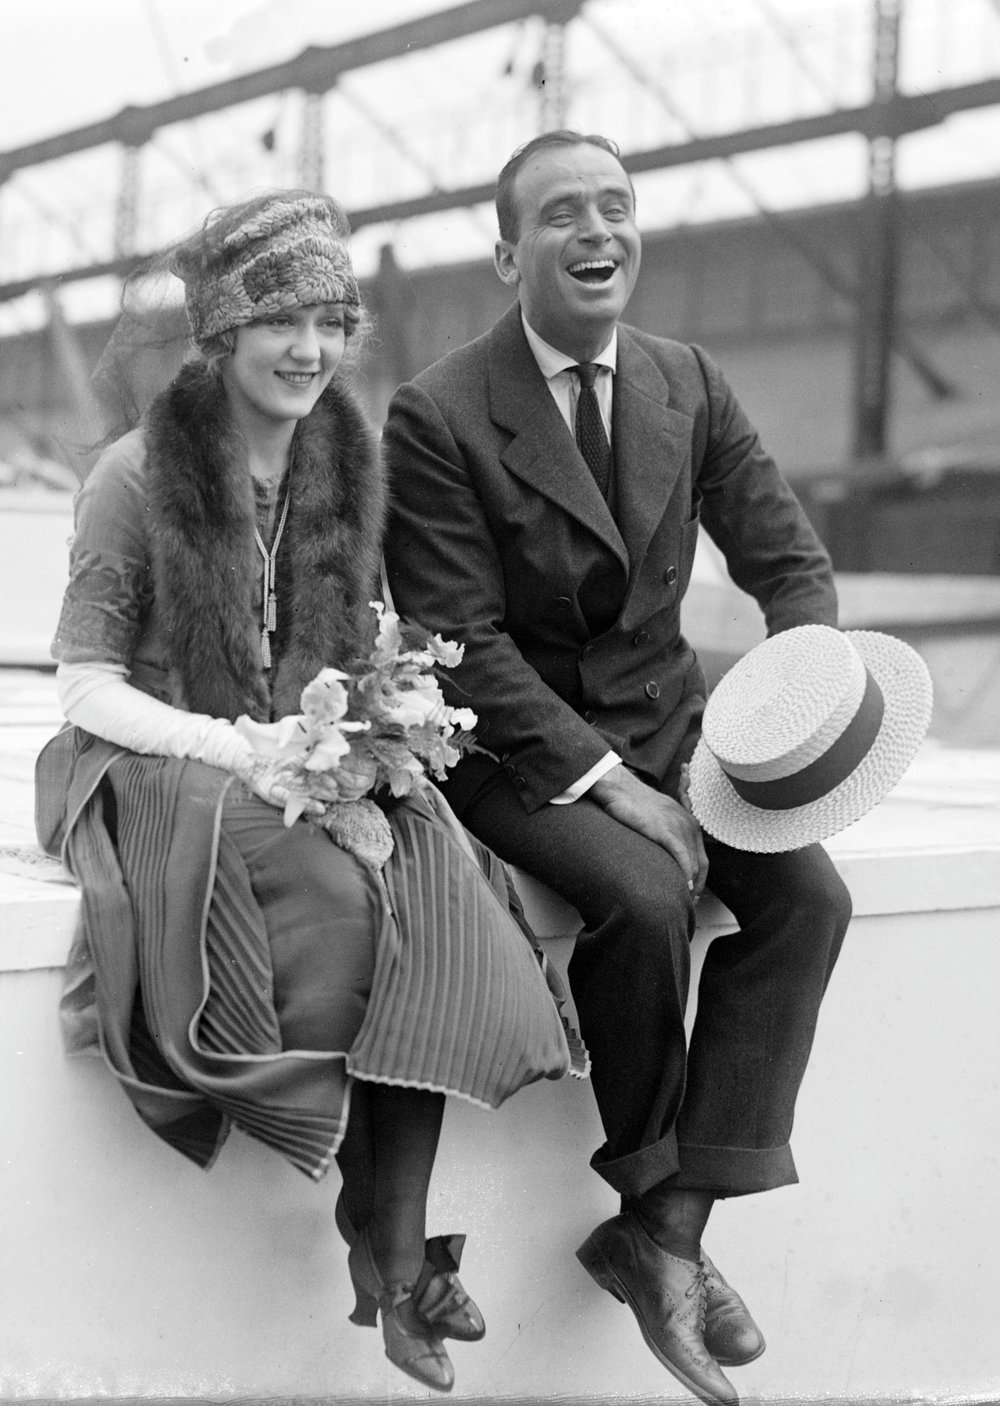 Douglas_Fairbanks_and_Mary_Pickford_02.jpg